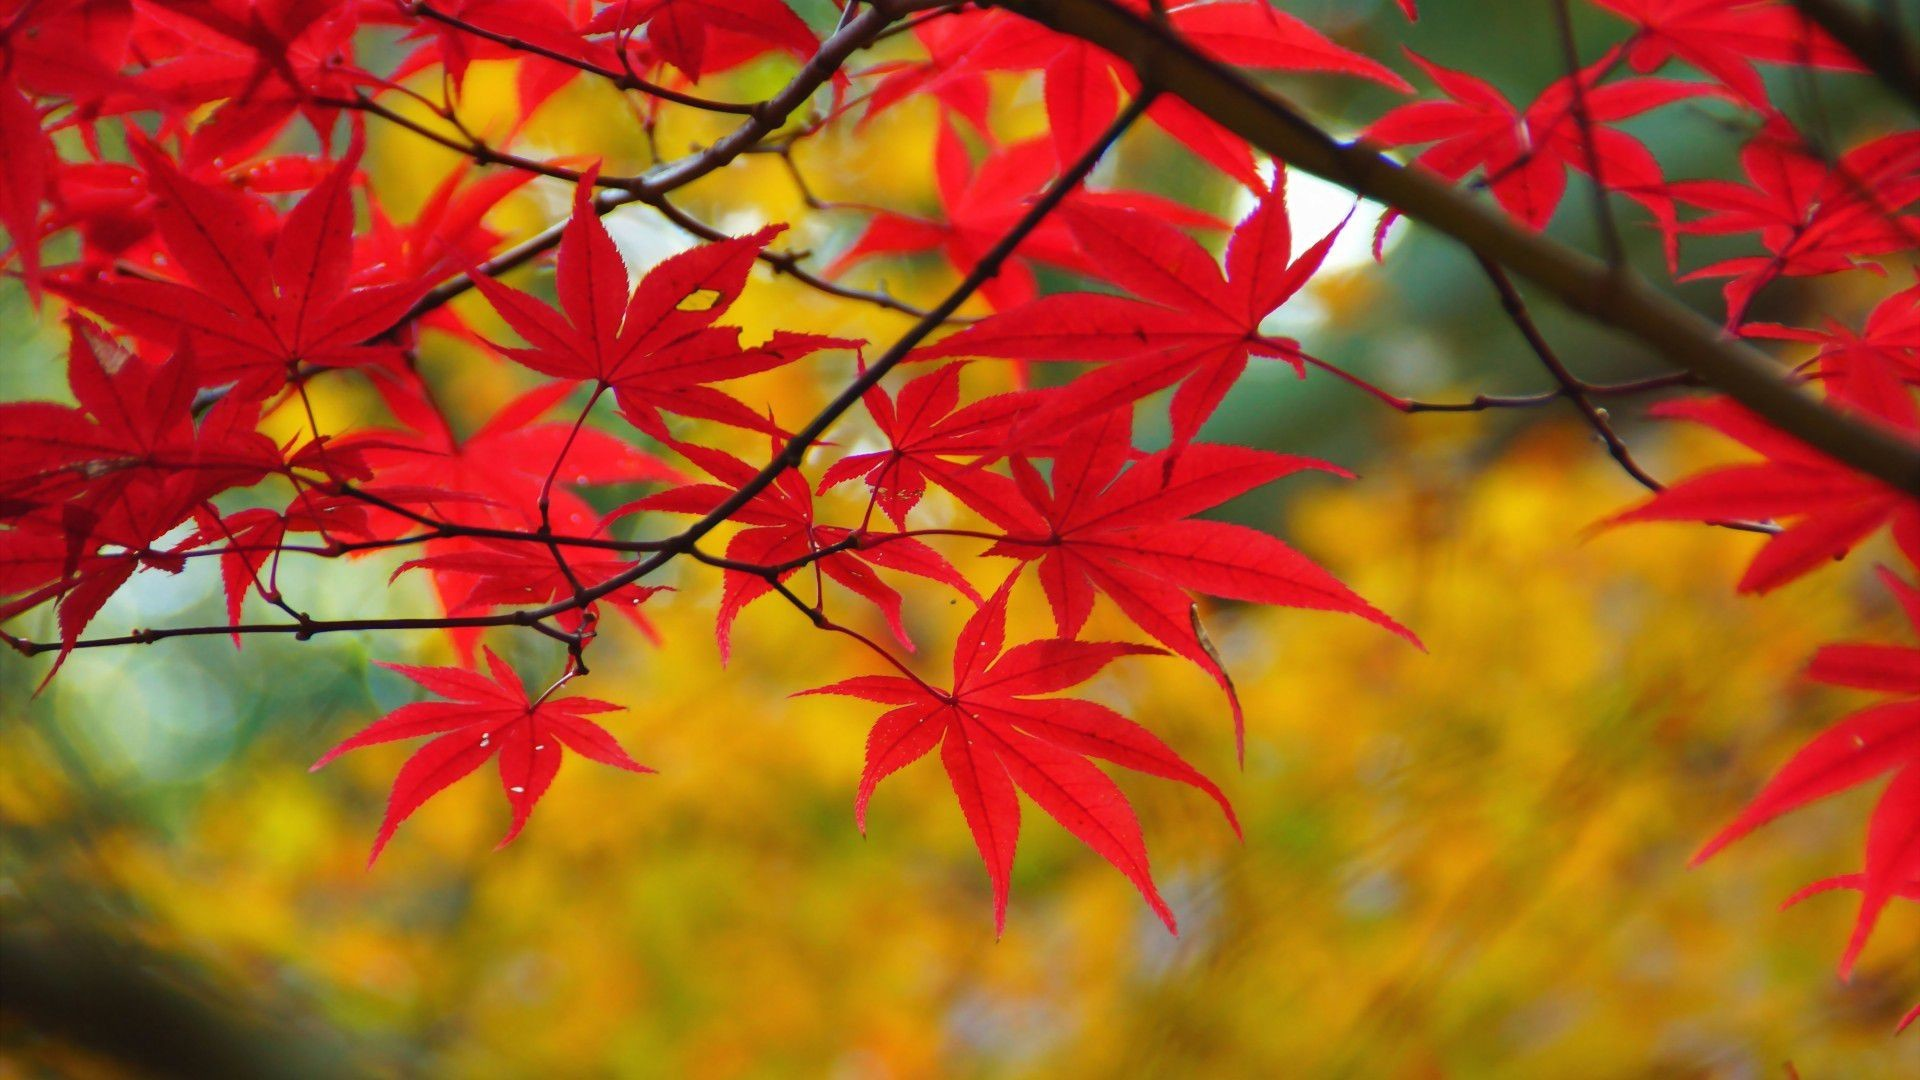 Fall Wallpaper And Screensavers For Free Fall Pumpkin Wallpaper And Screensavers 63 Images